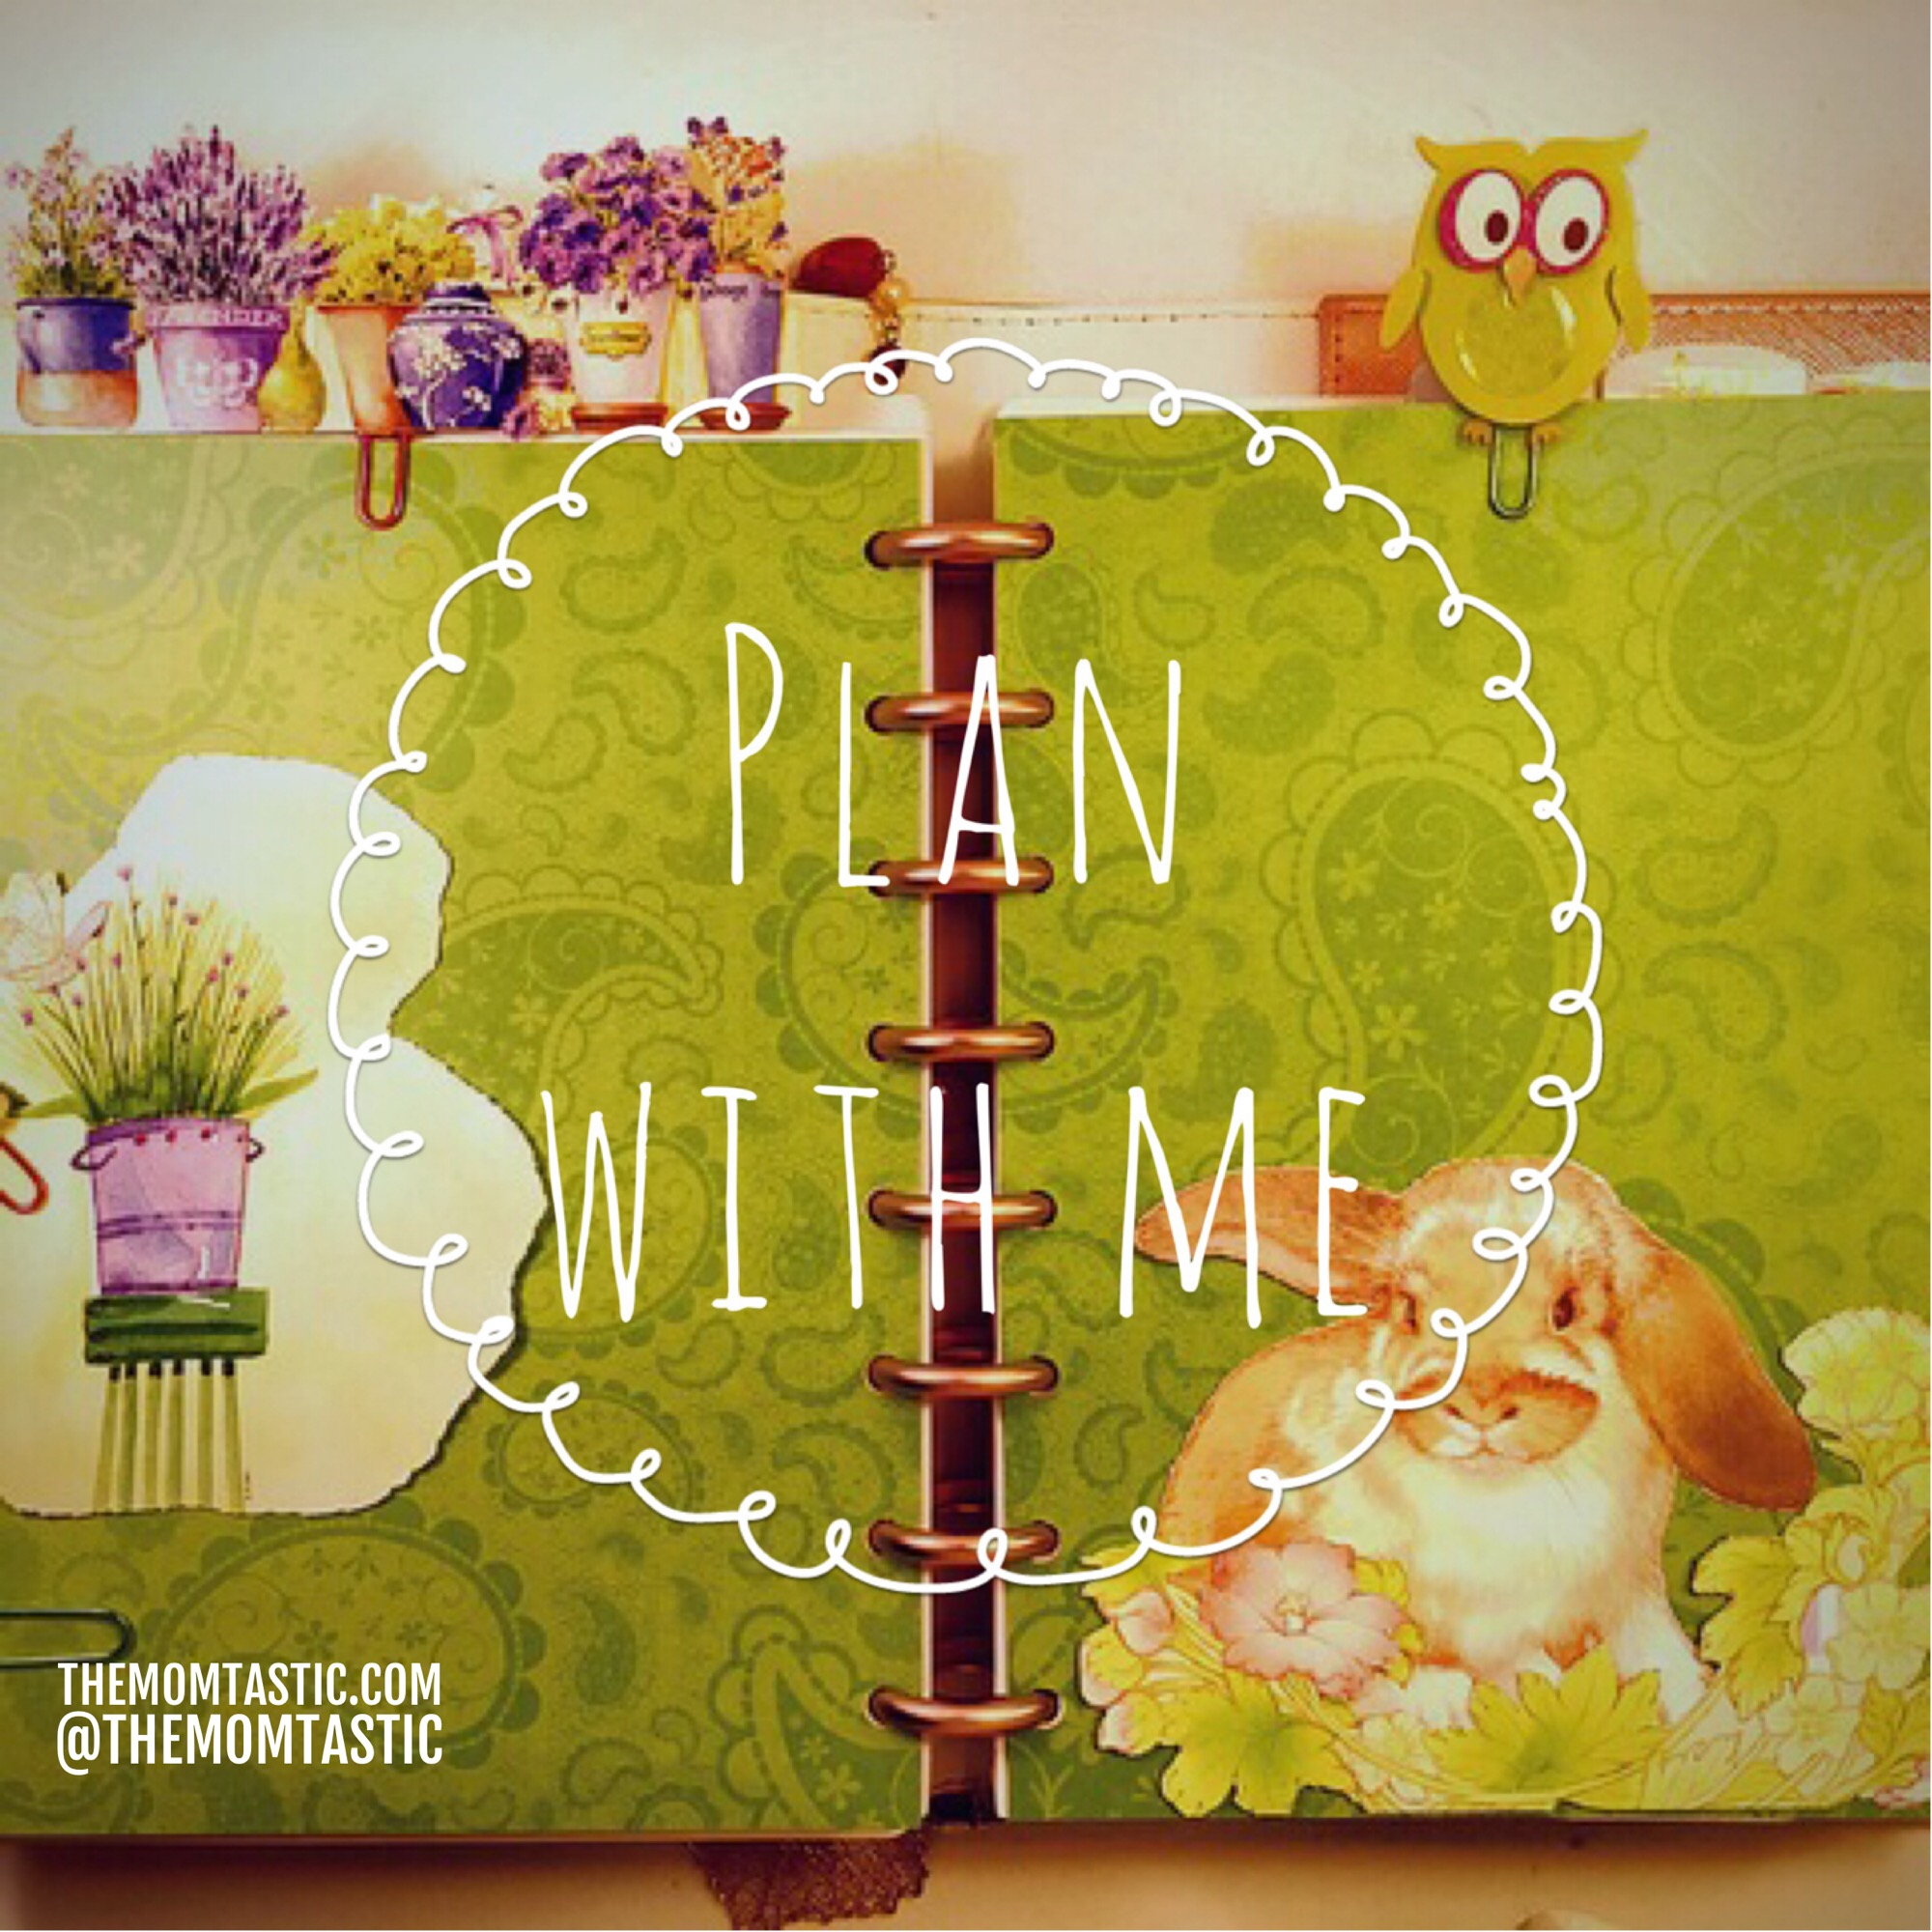 I'm a Planner Mom: Come and Plan With Me